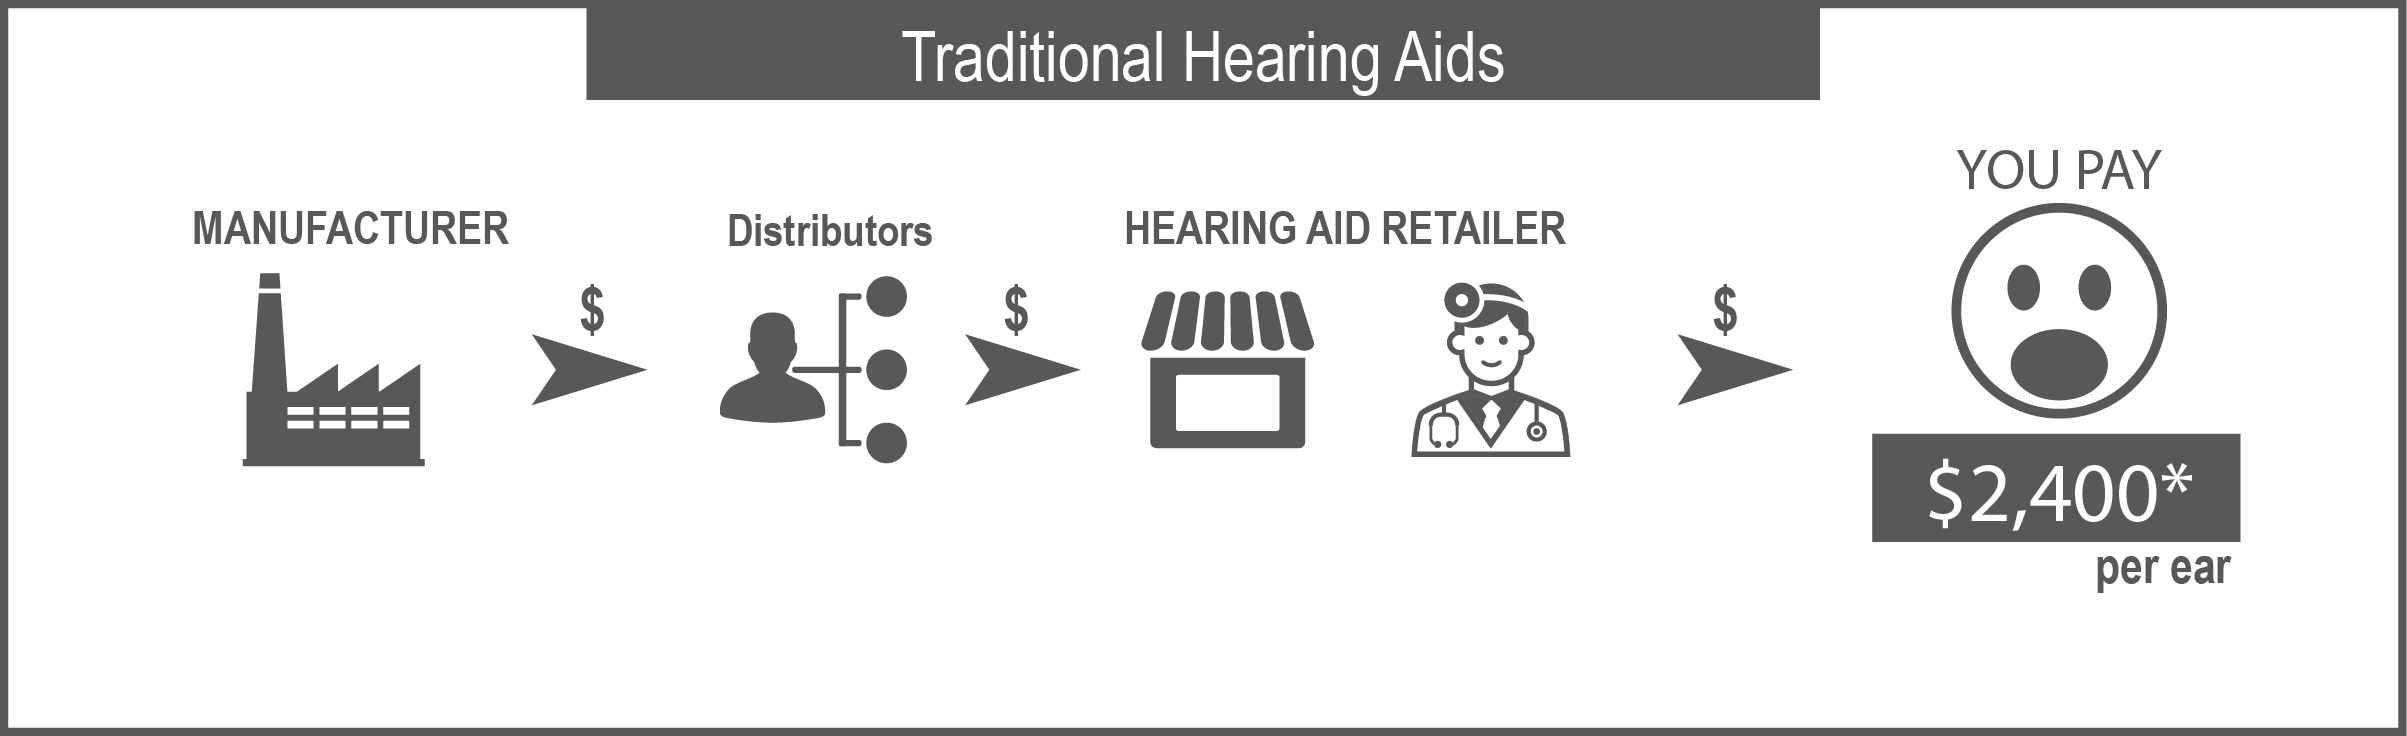 Traditional hearing aid distribution